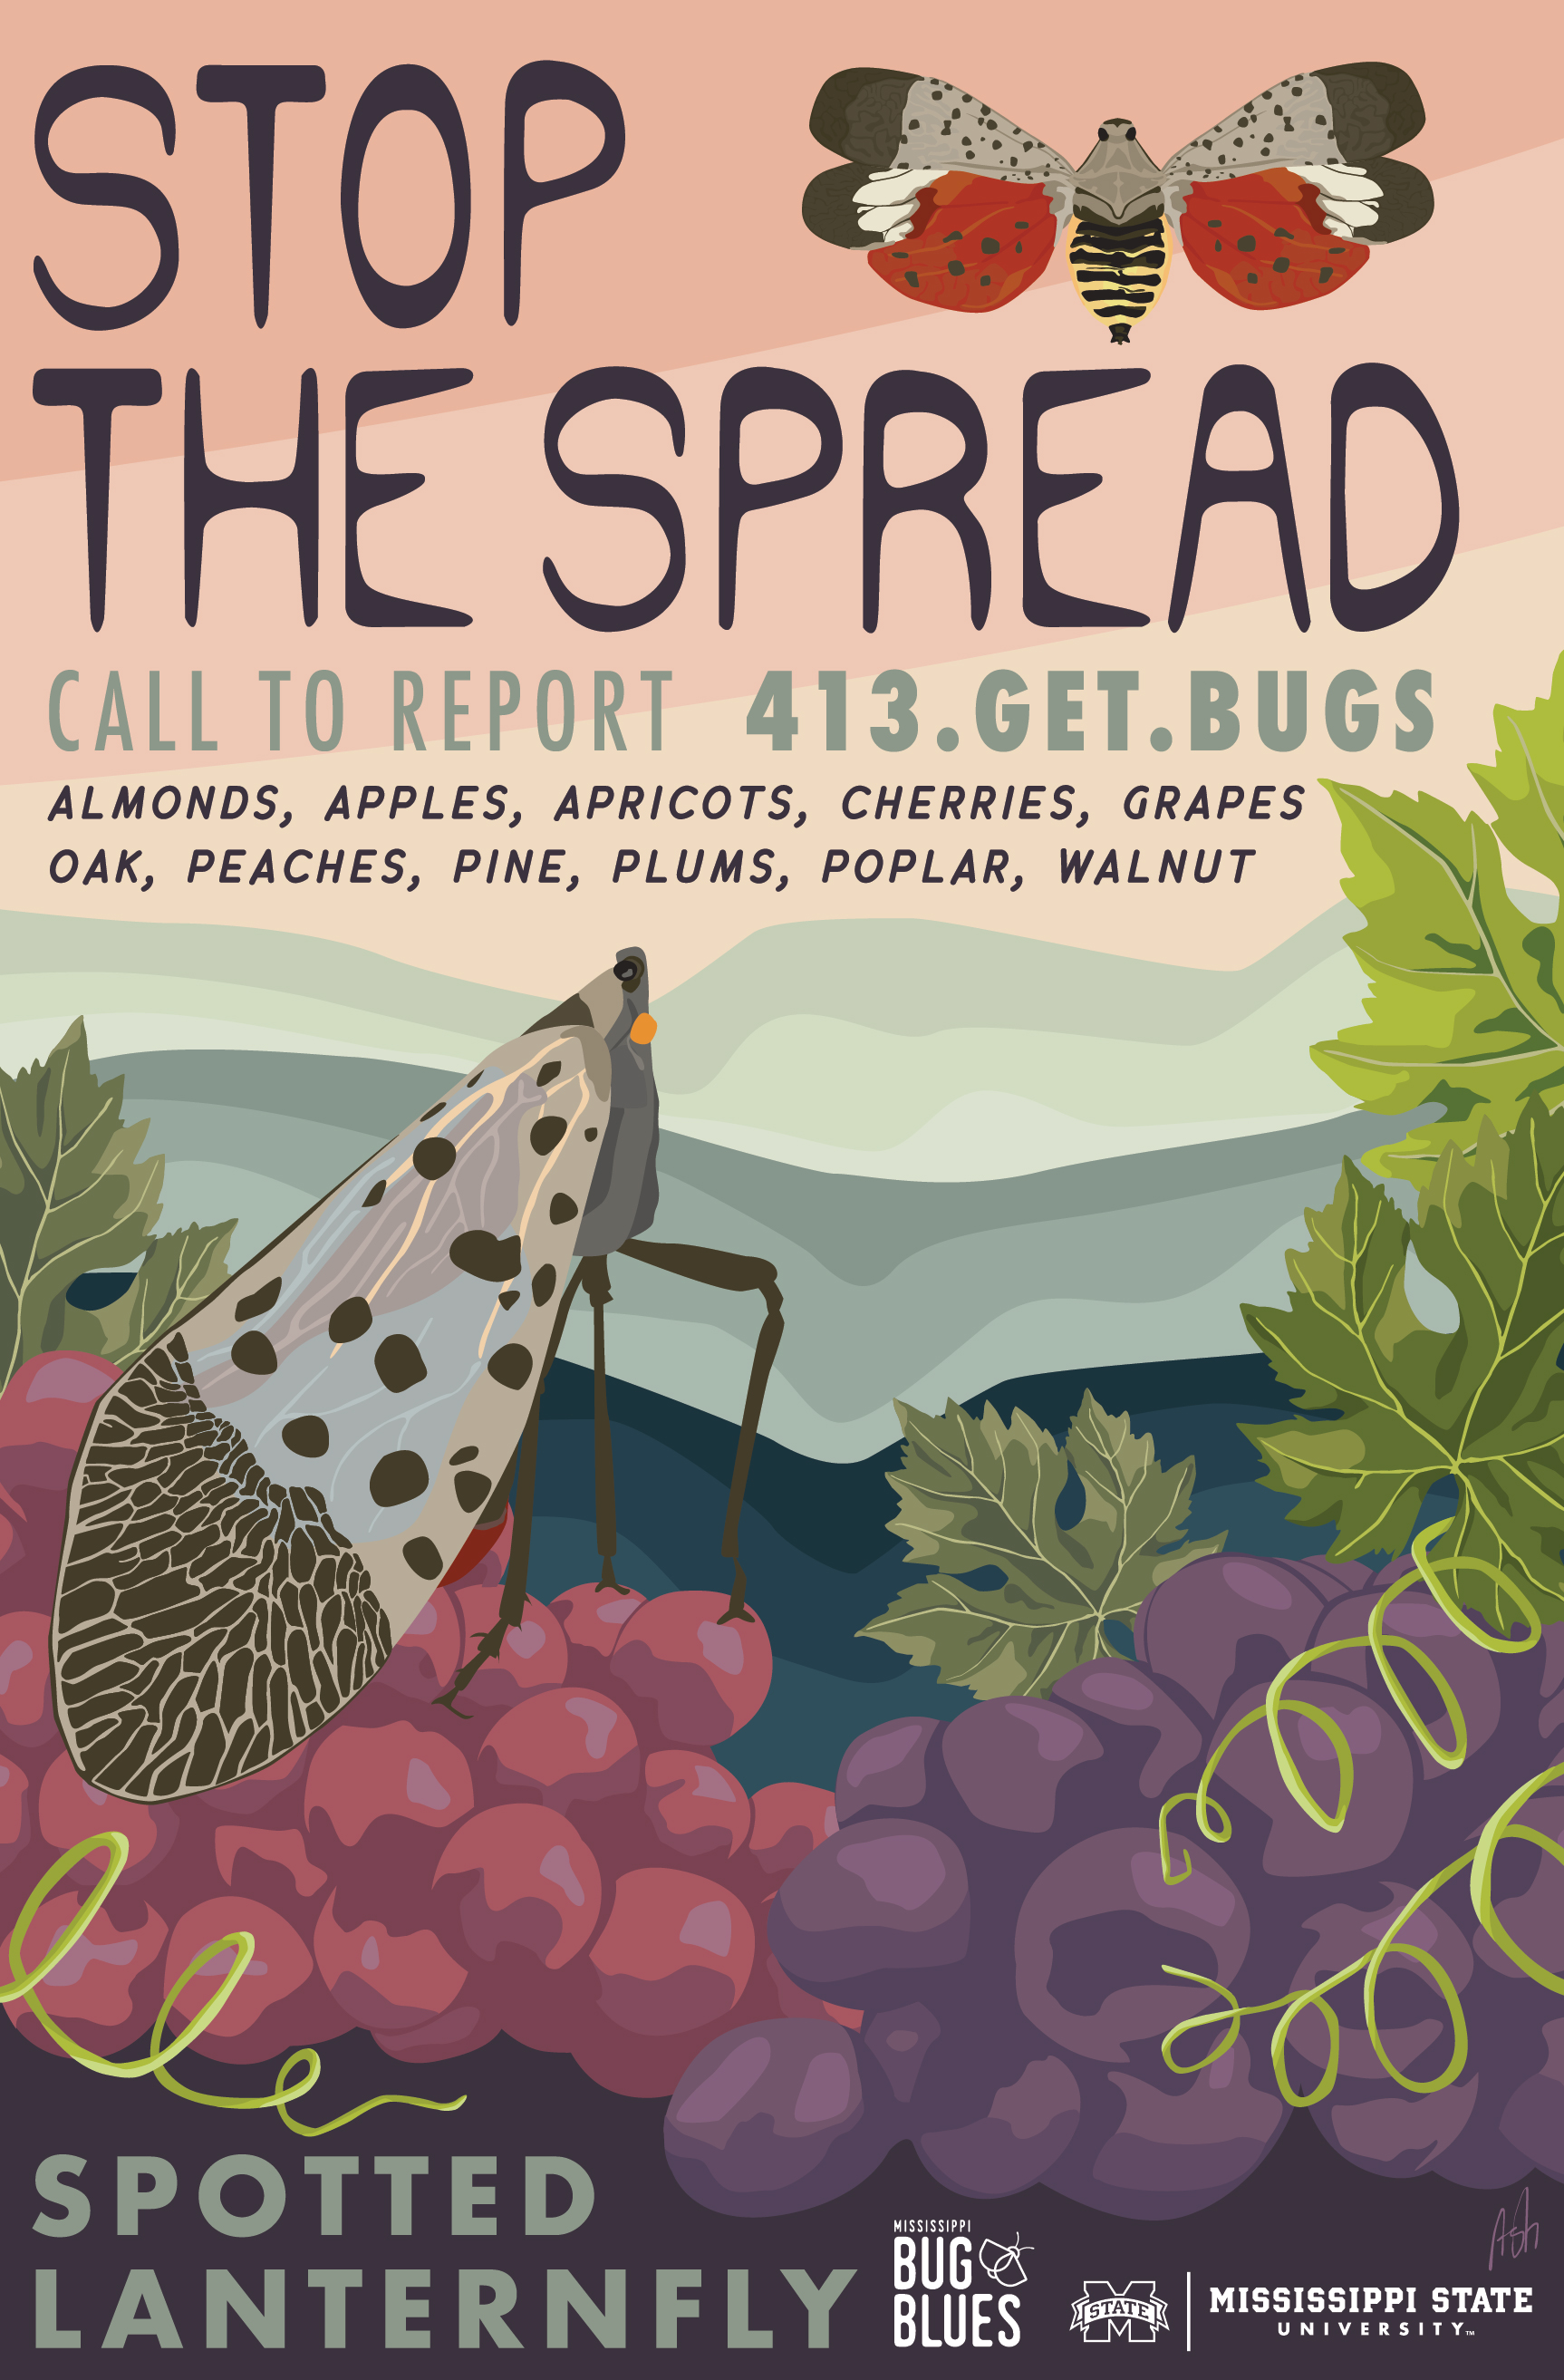 stop the spread invasive insect spotted lanternfly lantern fly awareness WPA crop crops field  grapes get bugs getbugs pdf mississippi bug blues  nymph